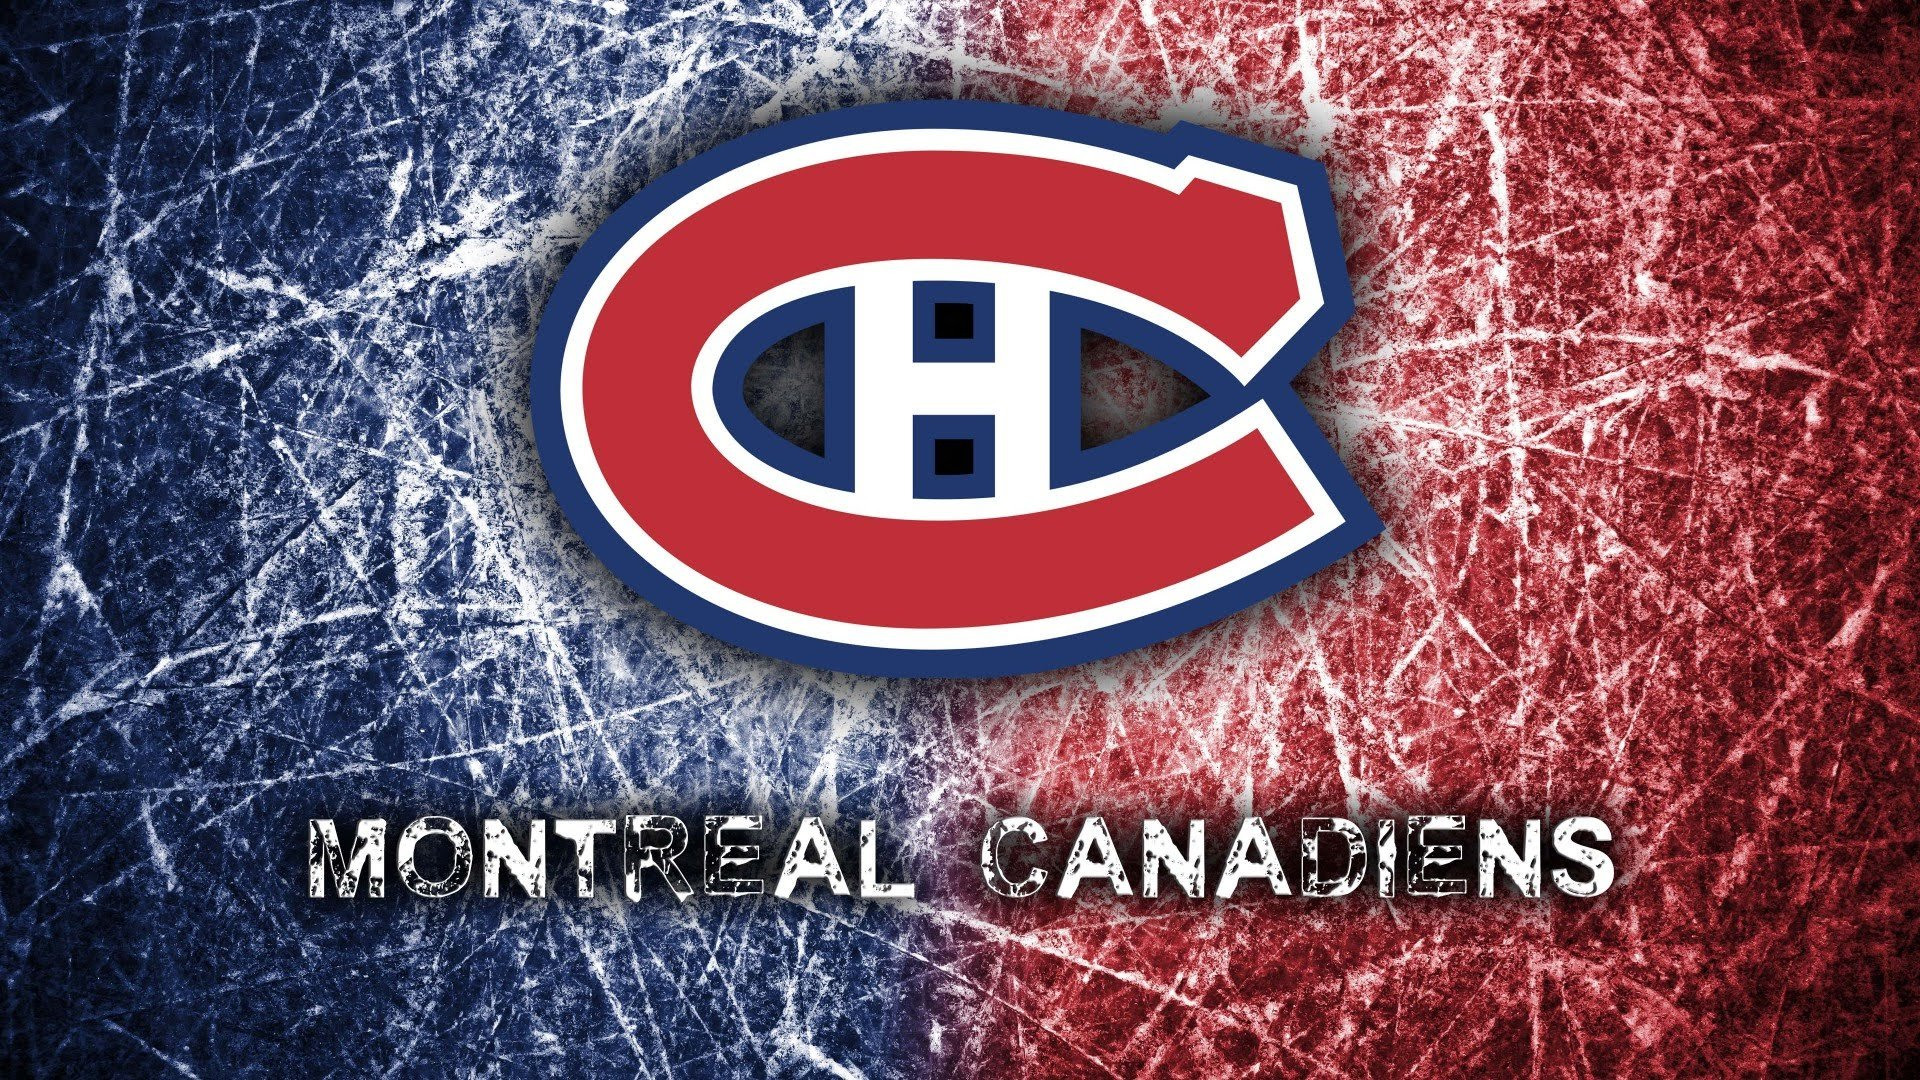 MONTREAL CANADIENS nhl hockey wallpaper 1920x1080 1920x1080